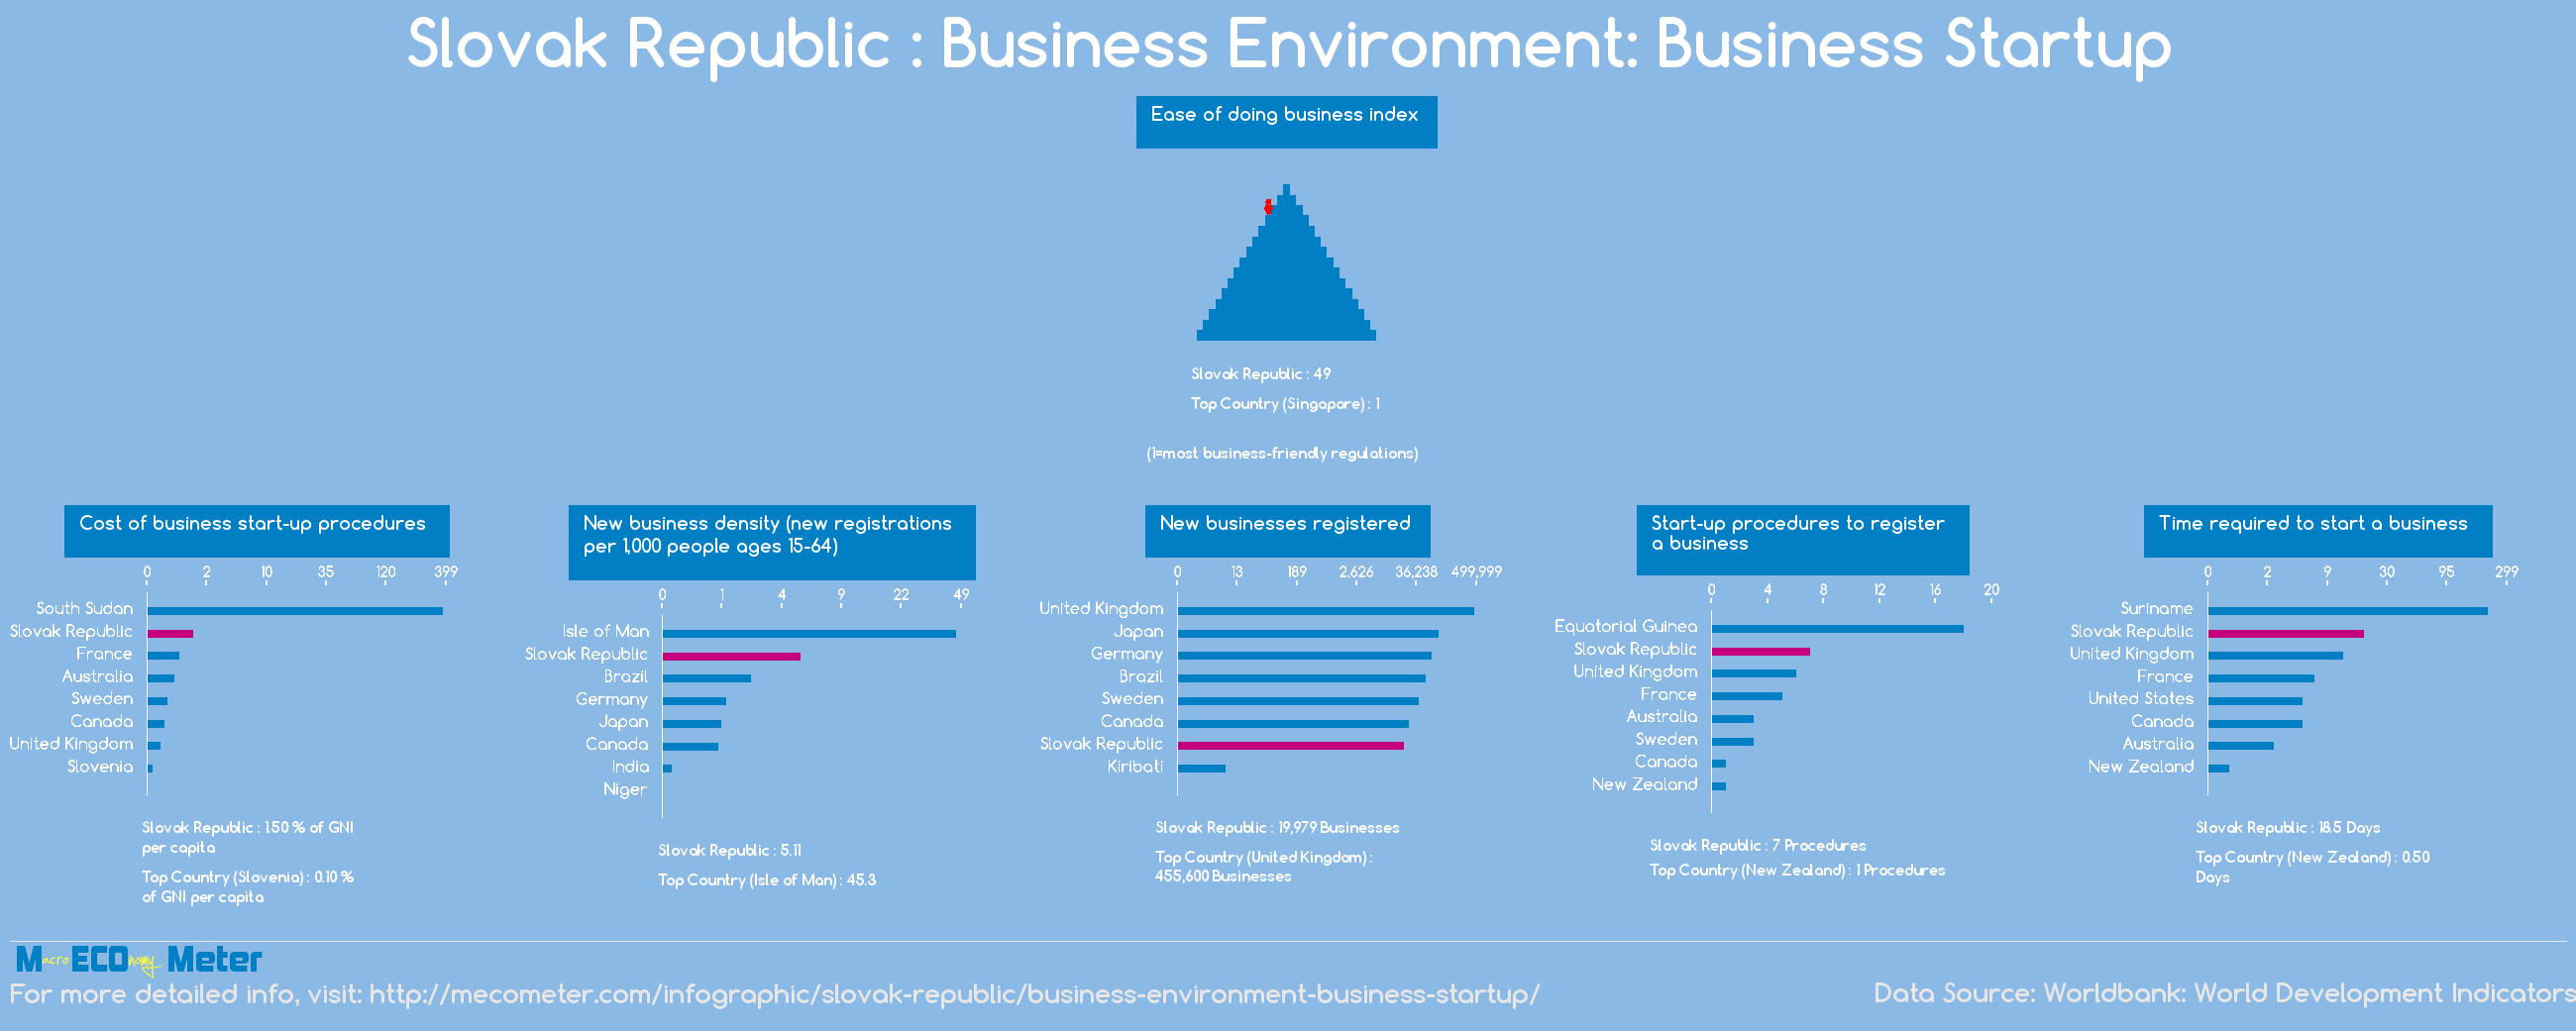 Slovak Republic : Business Environment: Business Startup